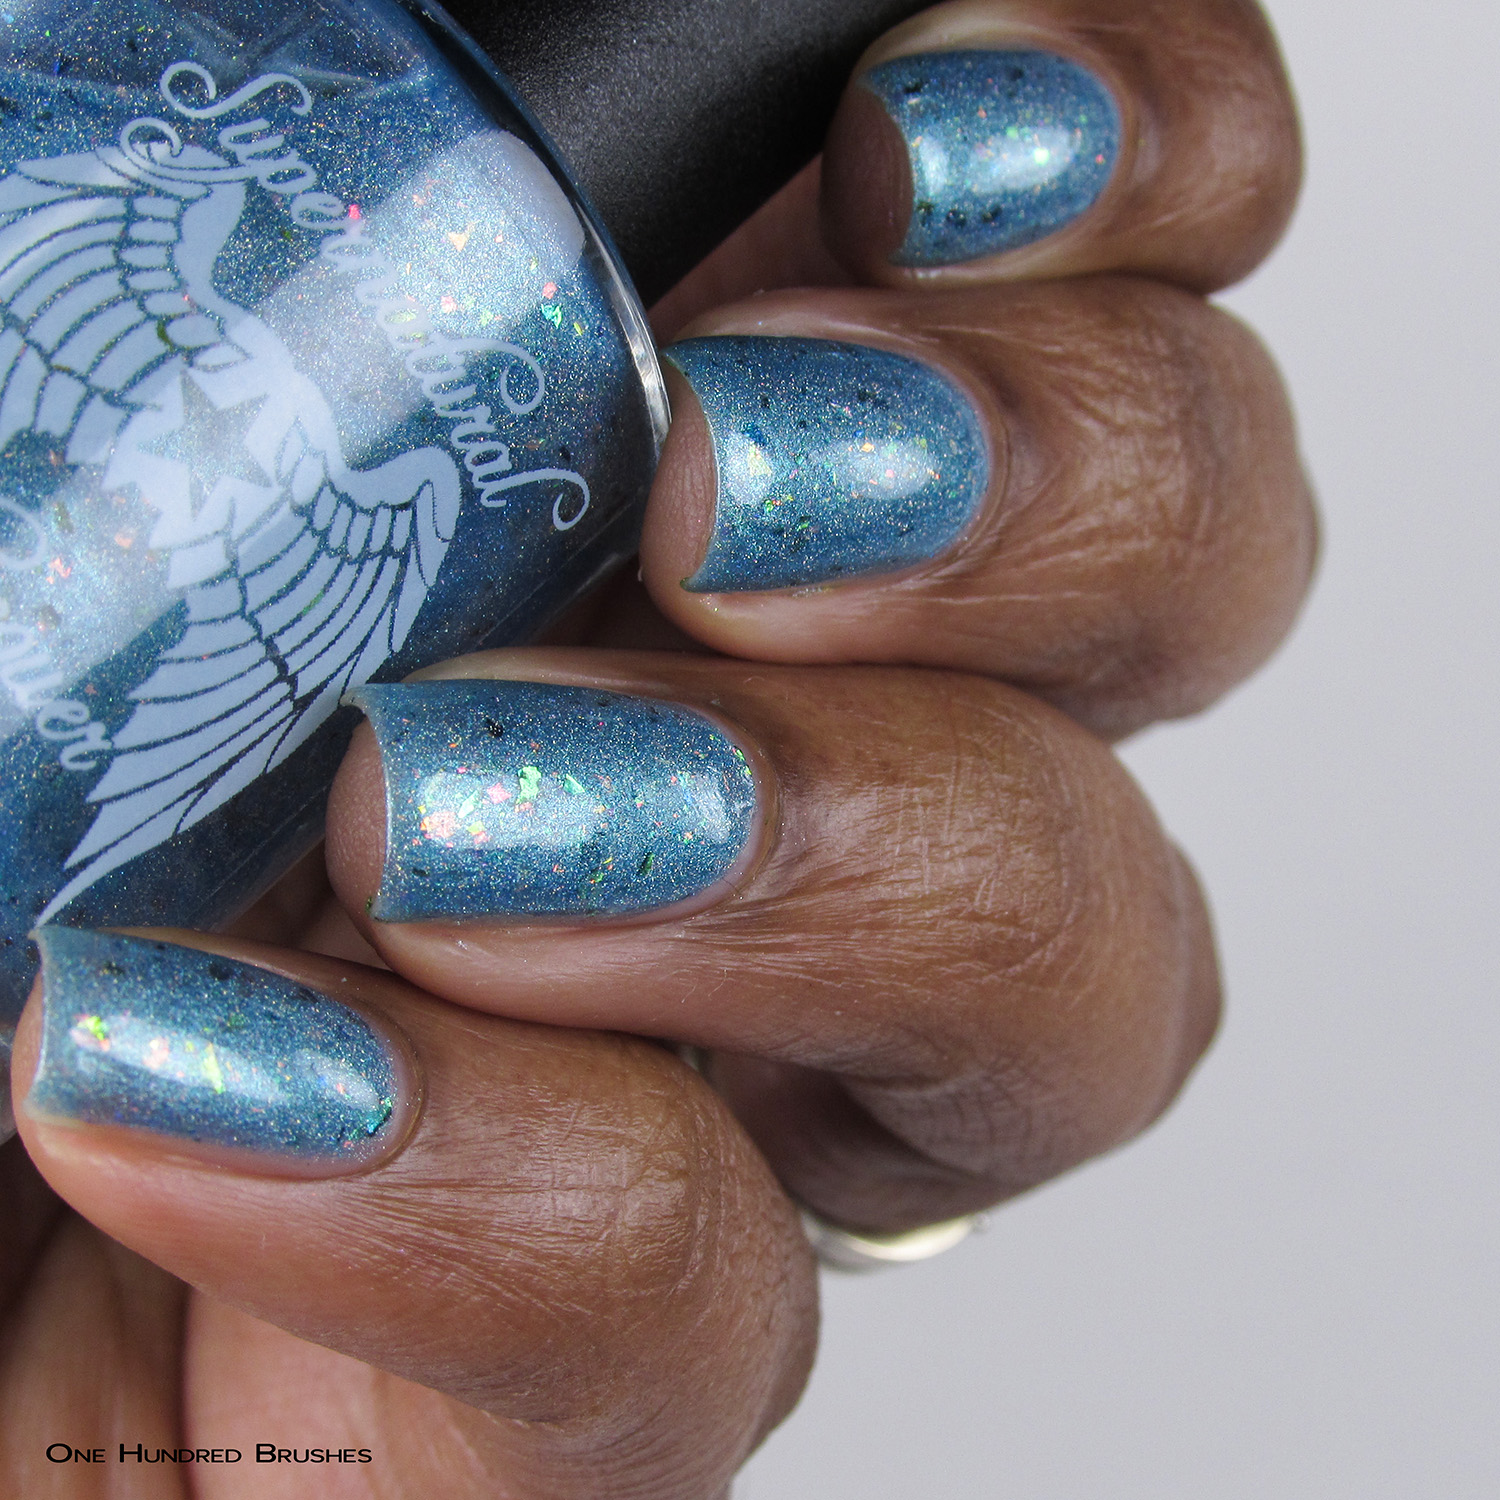 Everything's Shiny Cap'n! - Bottle Side - Supernatural Lacquer - July HHC